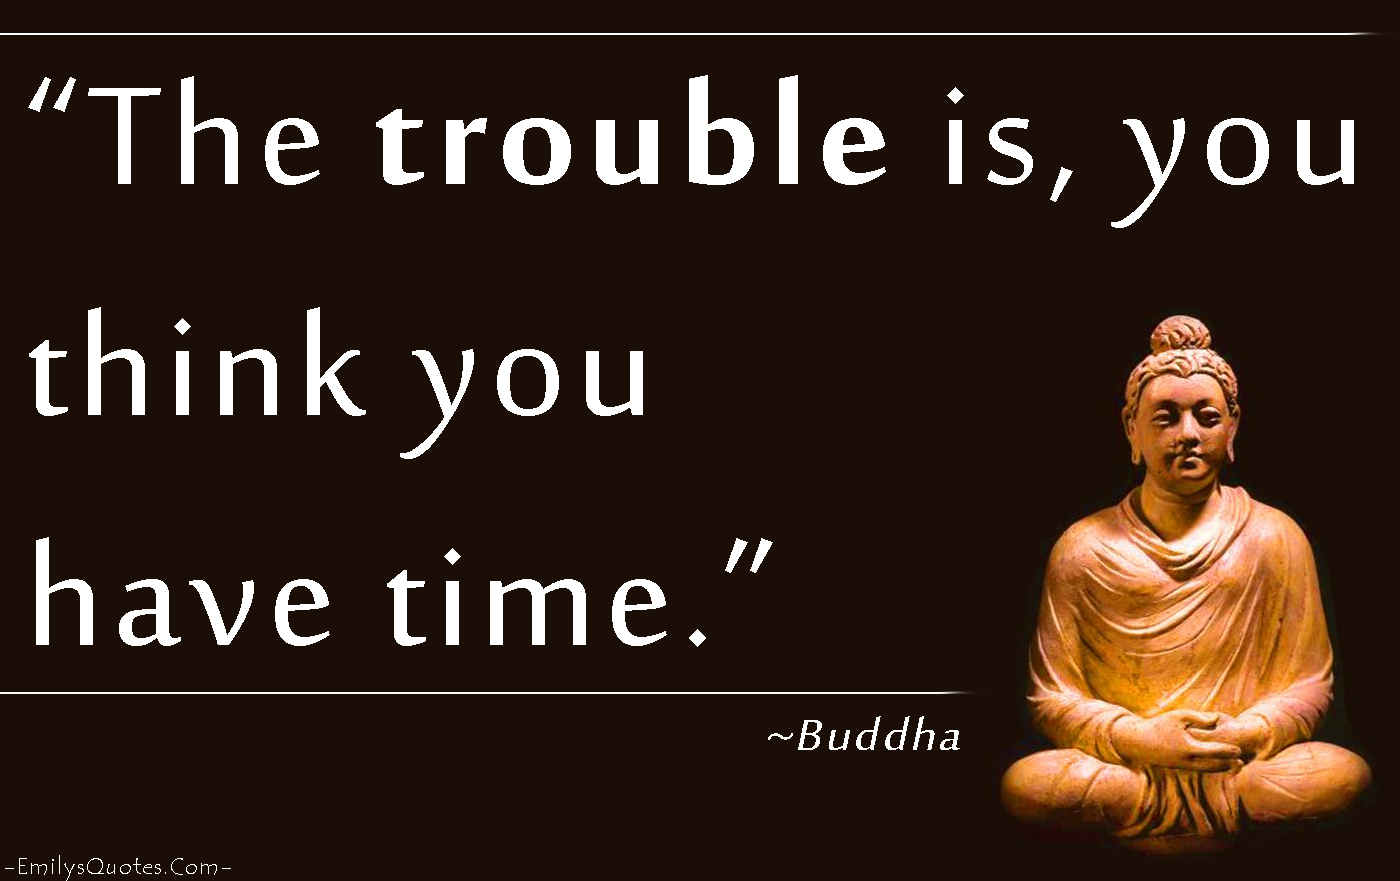 The trouble is, you think you have time | Popular ...